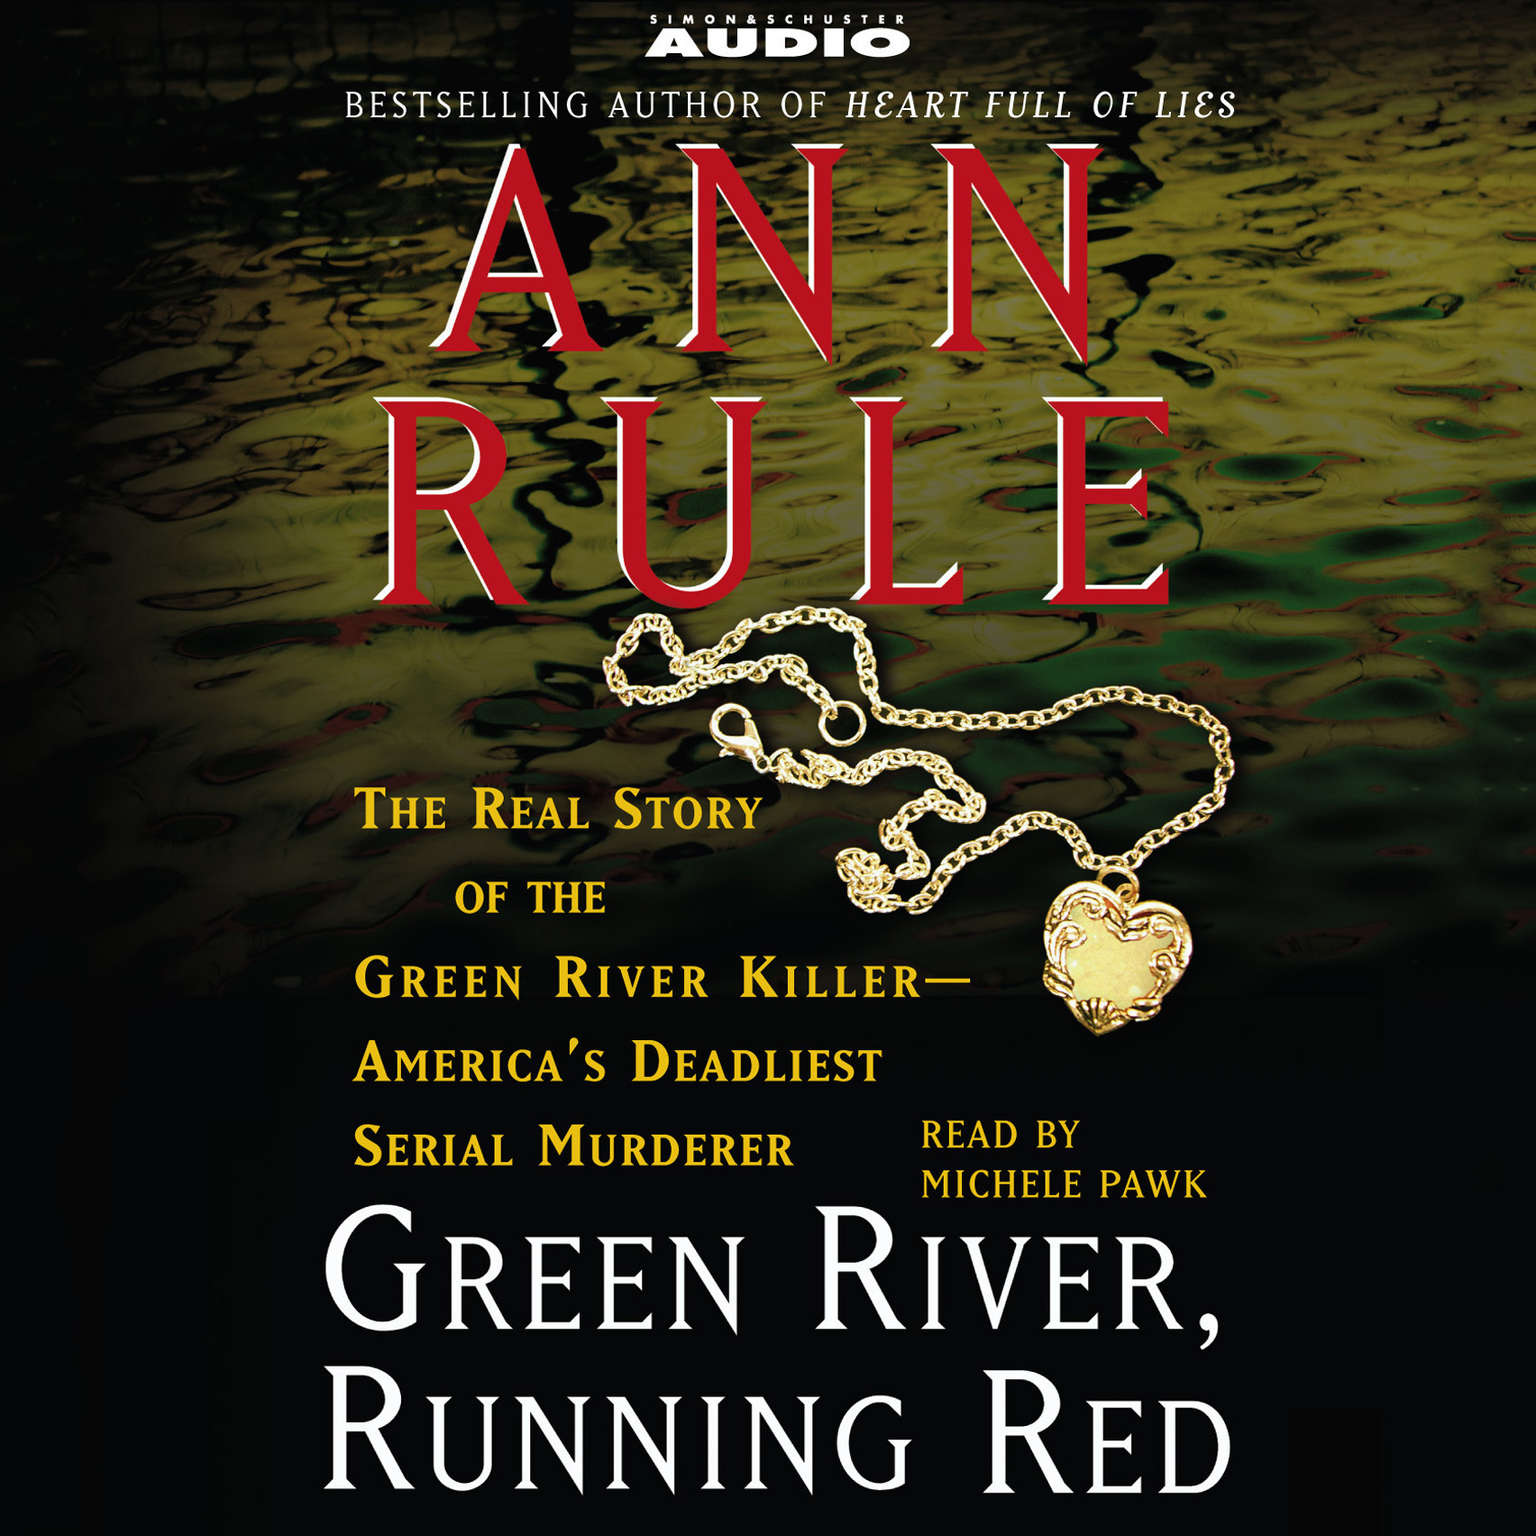 Printable Green River, Running Red: The Real Story of the Green River Killer--Americas Deadliest Serial Murderer Audiobook Cover Art